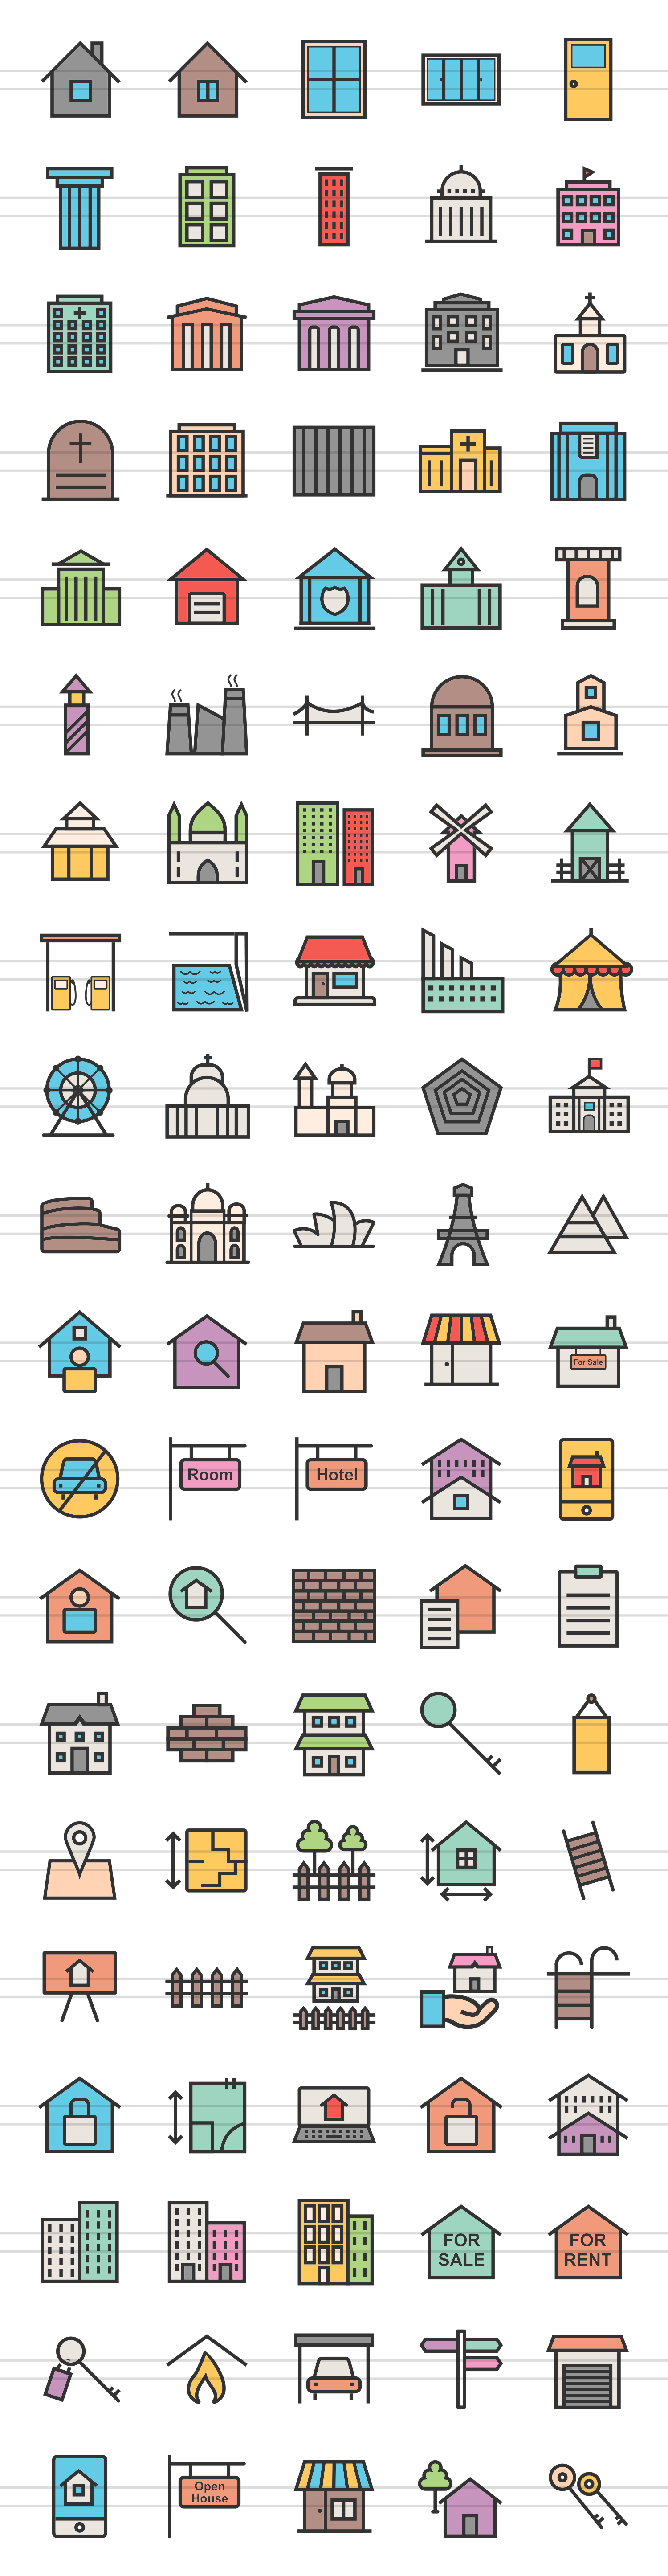 100 Building & Landmarks Filled Line Icons example image 2